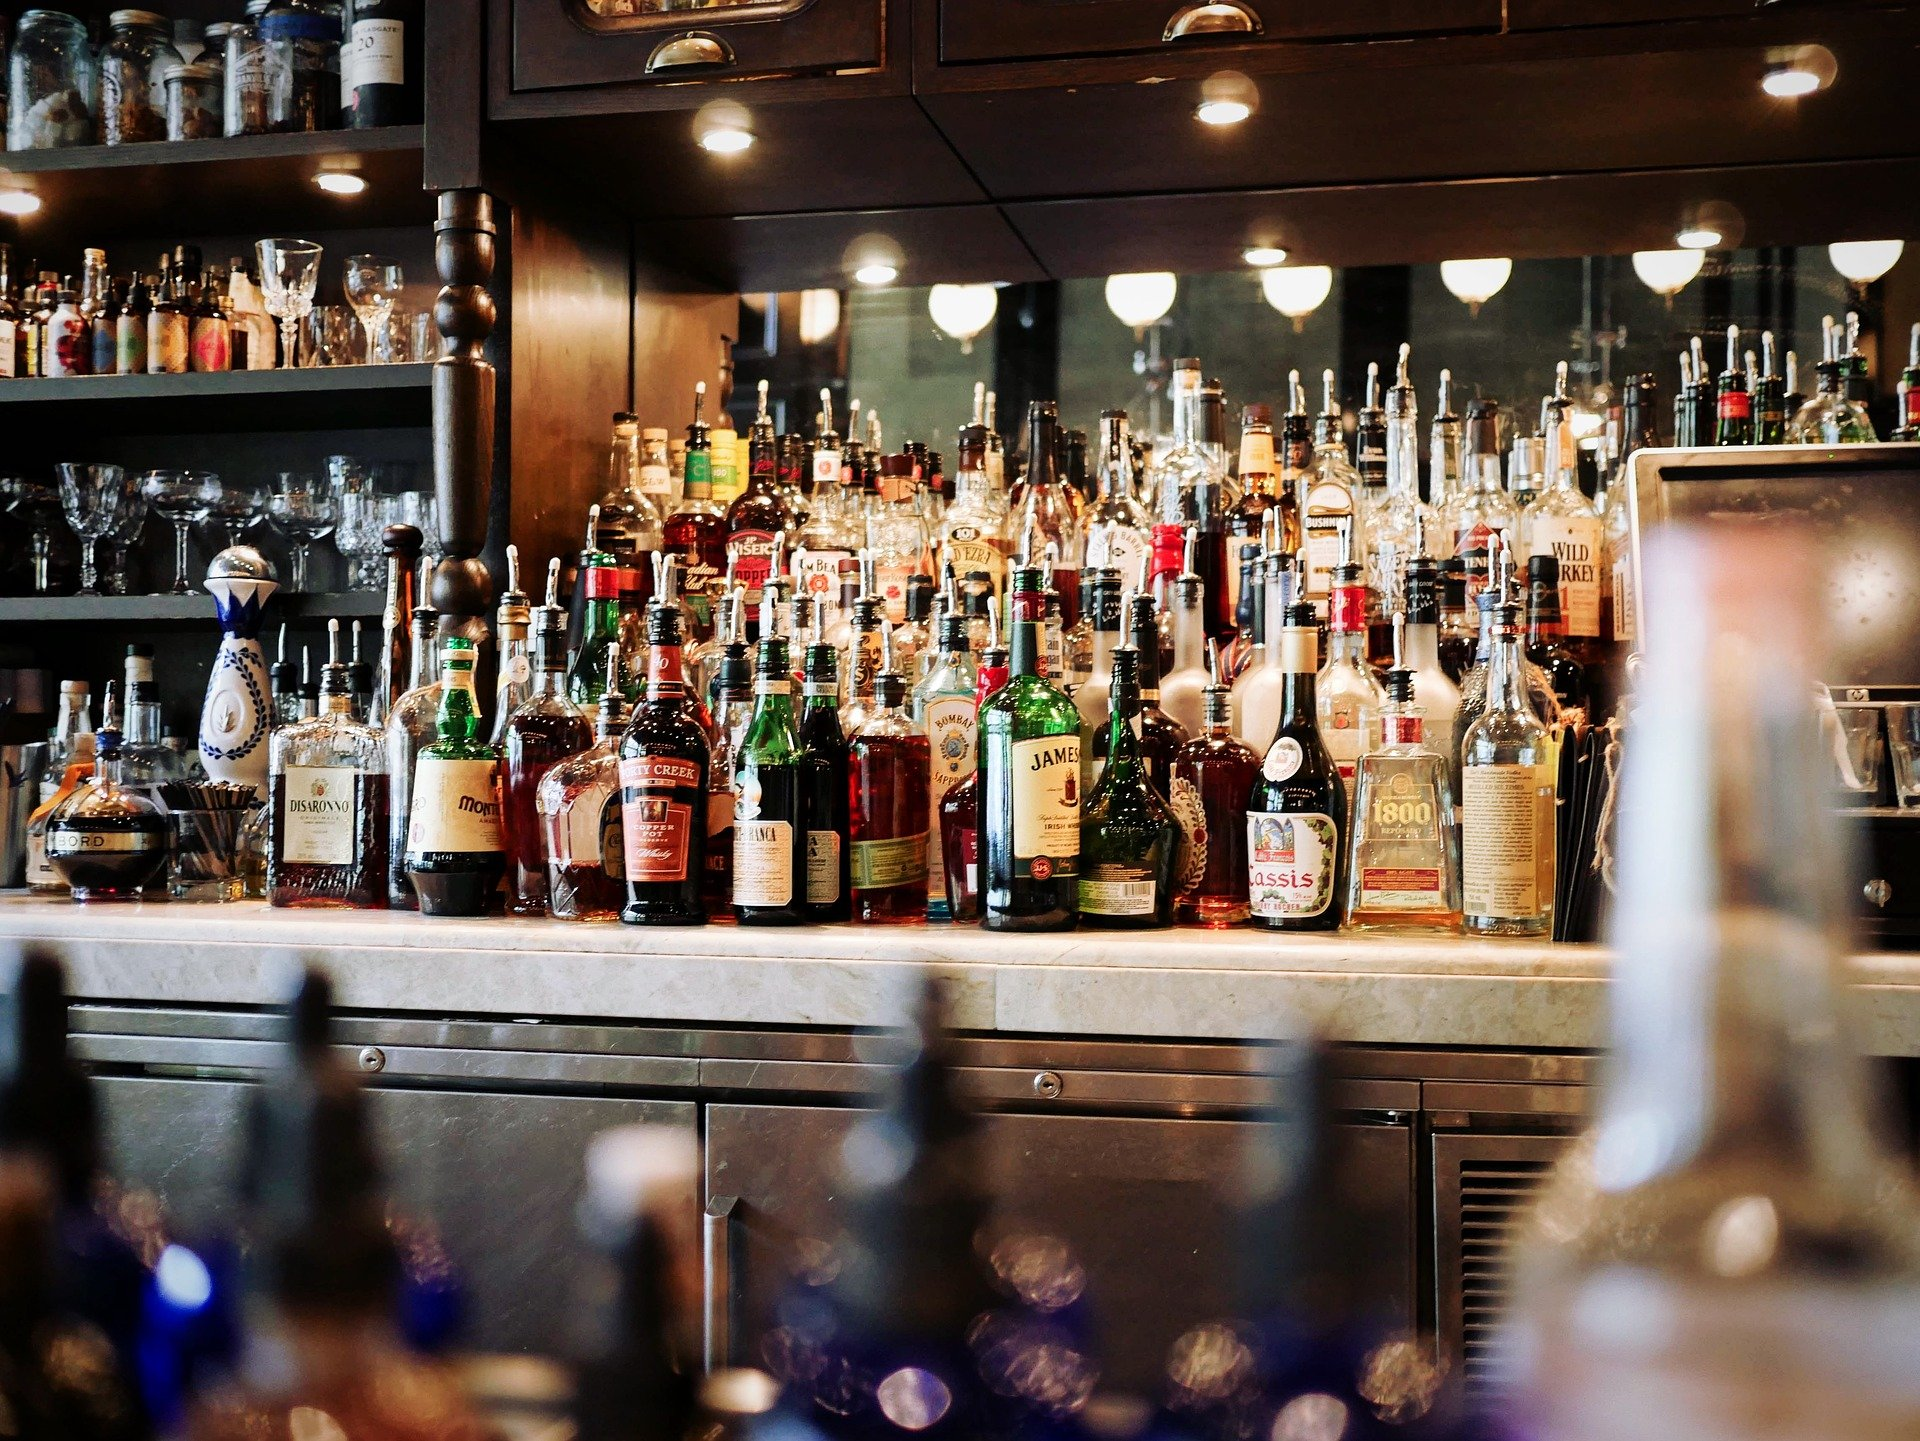 A bar stocked up with various alcoholic beverages   Photo: Pixabay/Pexels